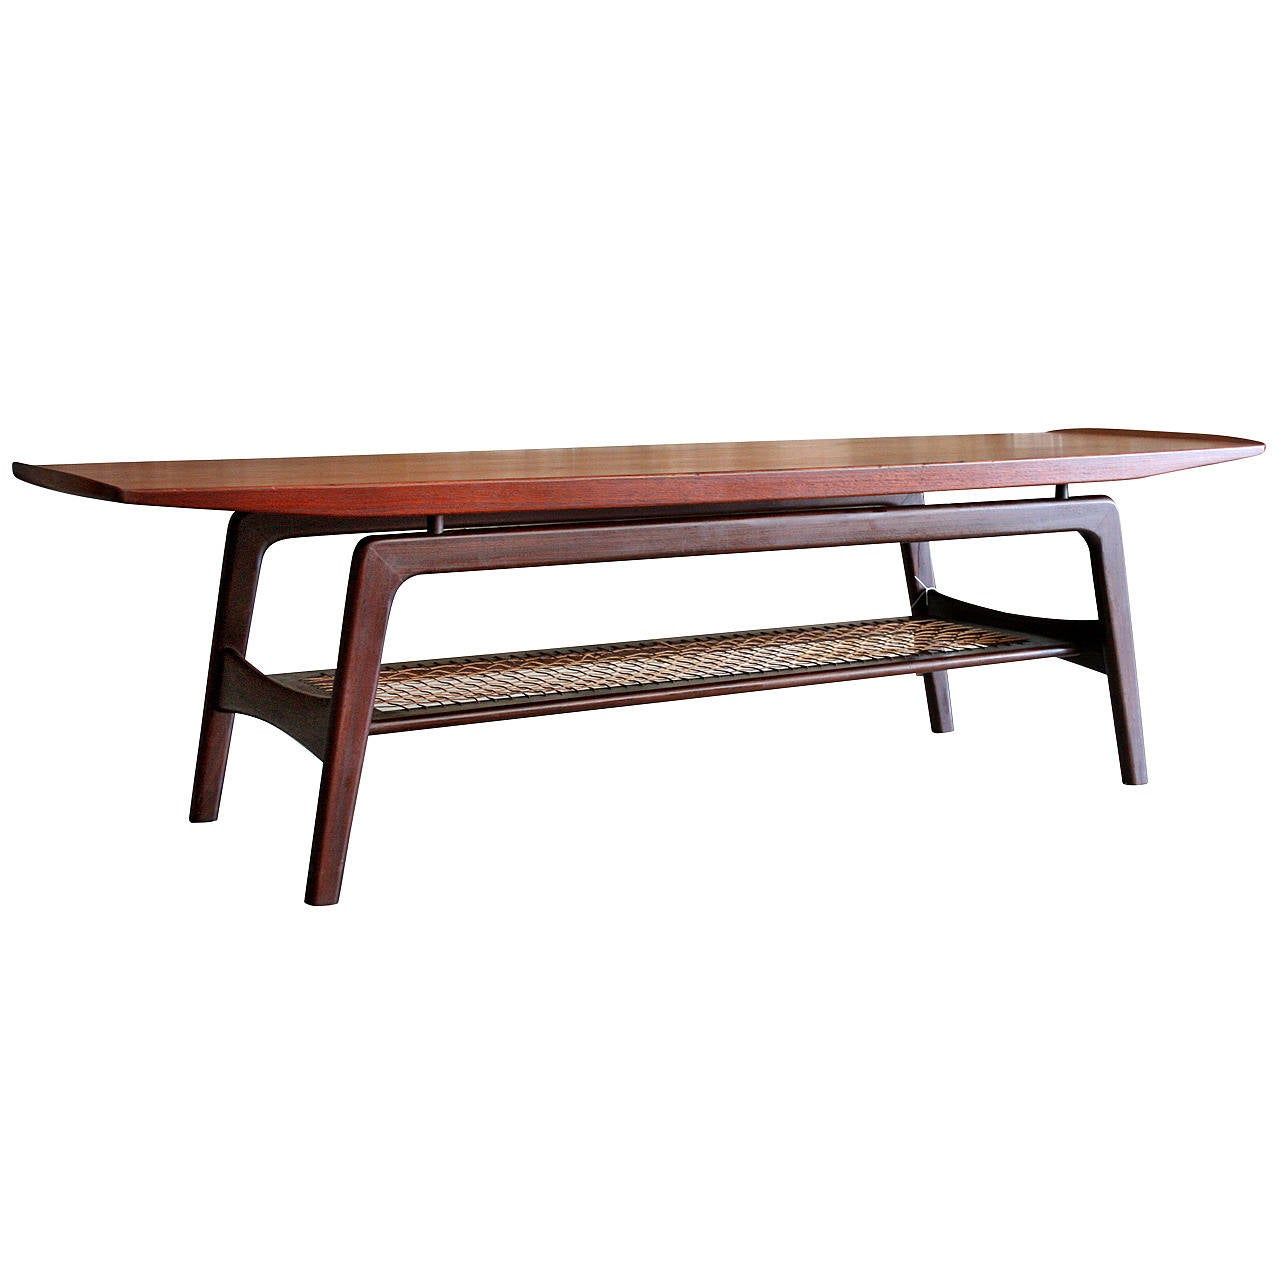 Teak Danish Coffee Table By Arne Hovmand-Olsen At 1stdibs